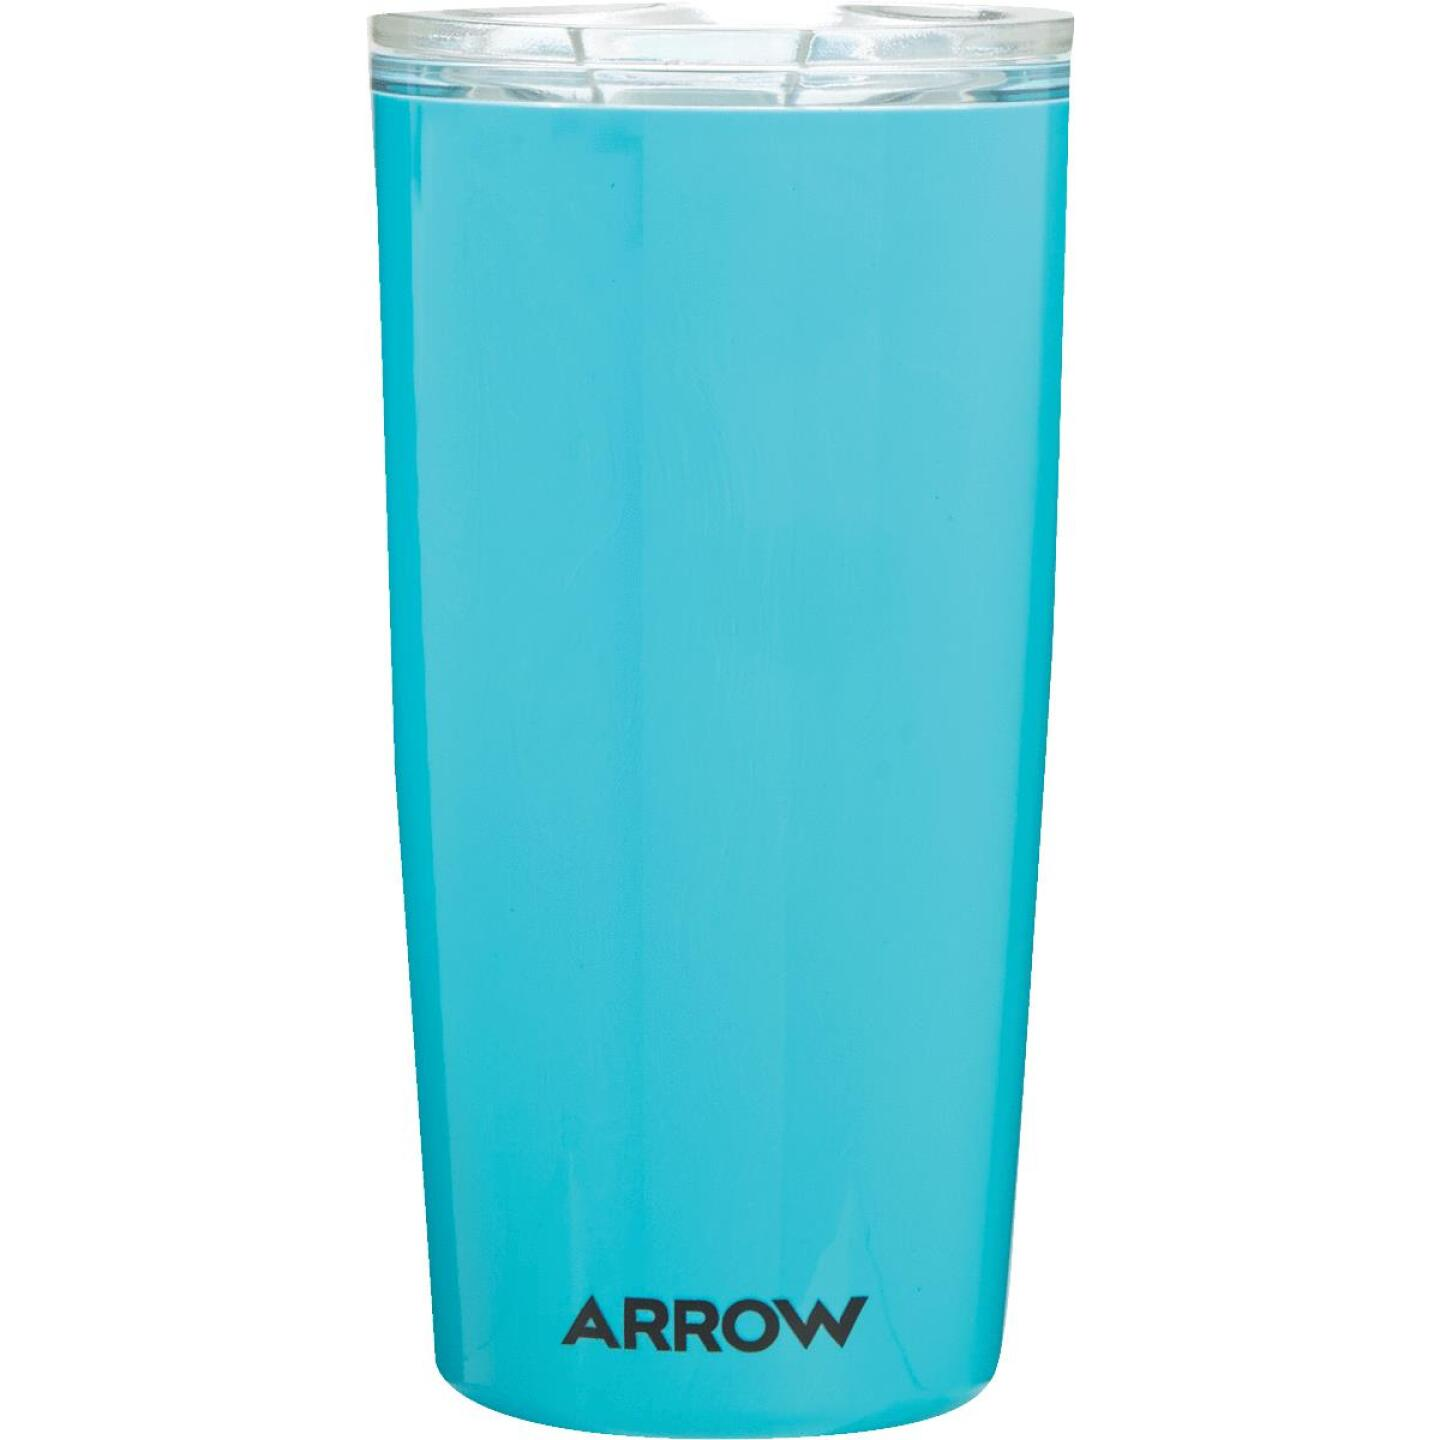 Arrow 18 Oz. Insulated Tumbler with Lid Image 3